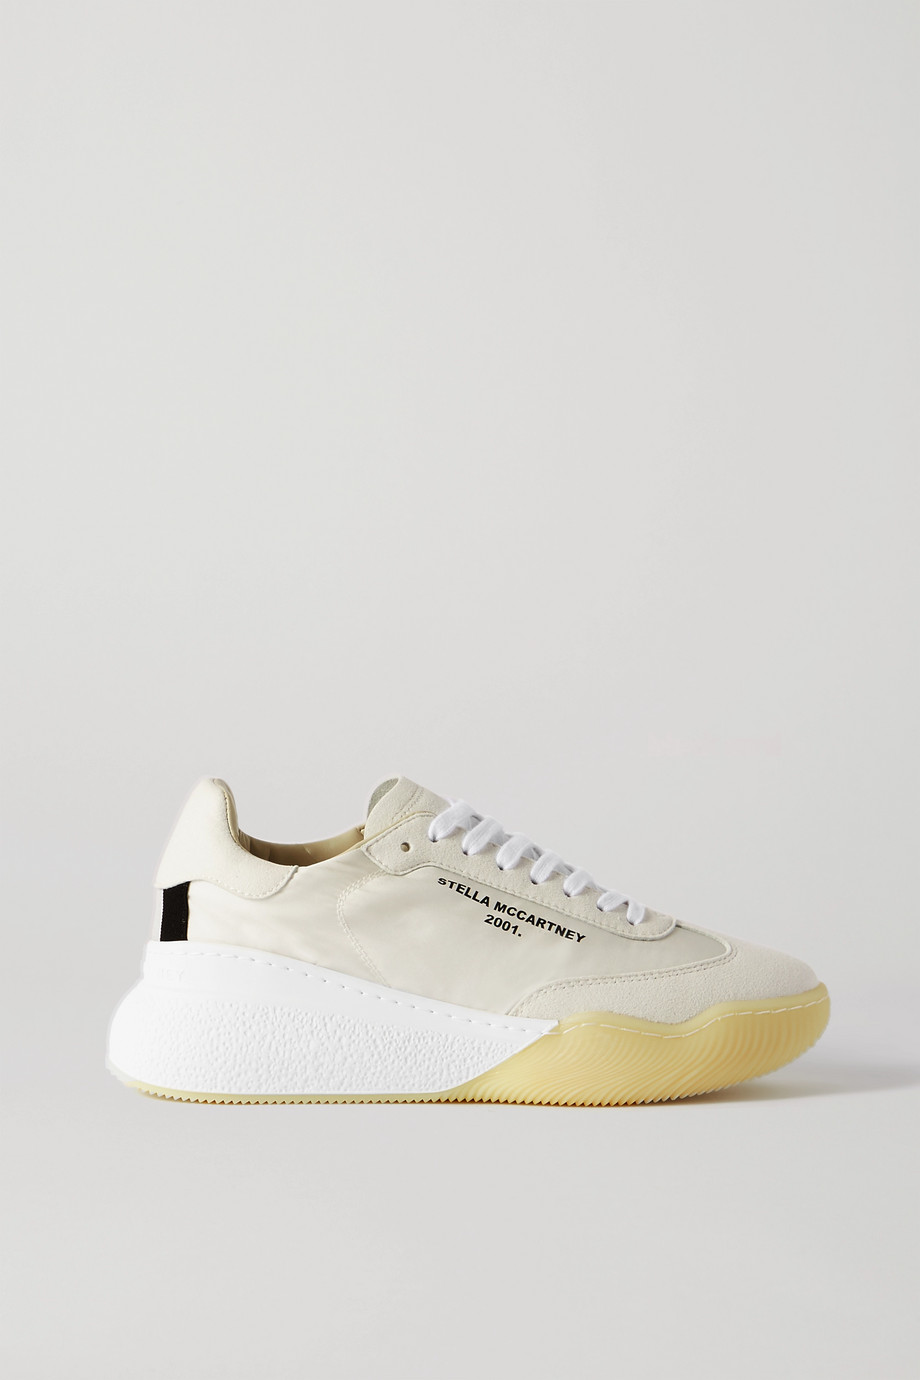 STELLA MCCARTNEY Loop logo-print neoprene and faux suede sneakers